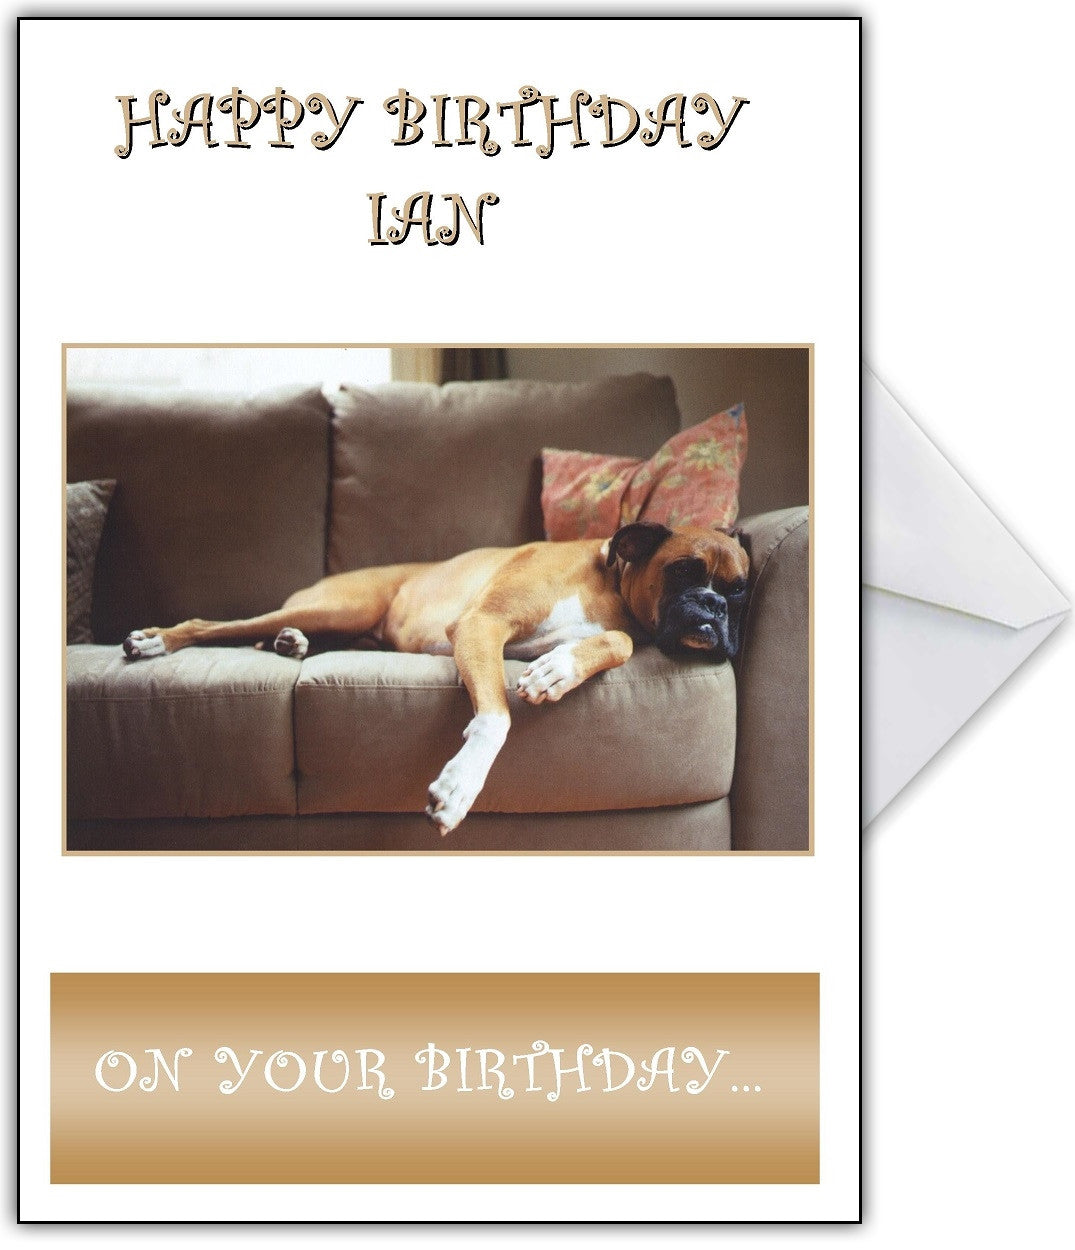 Take It Easy On Your Birthday Lazy Dog Card